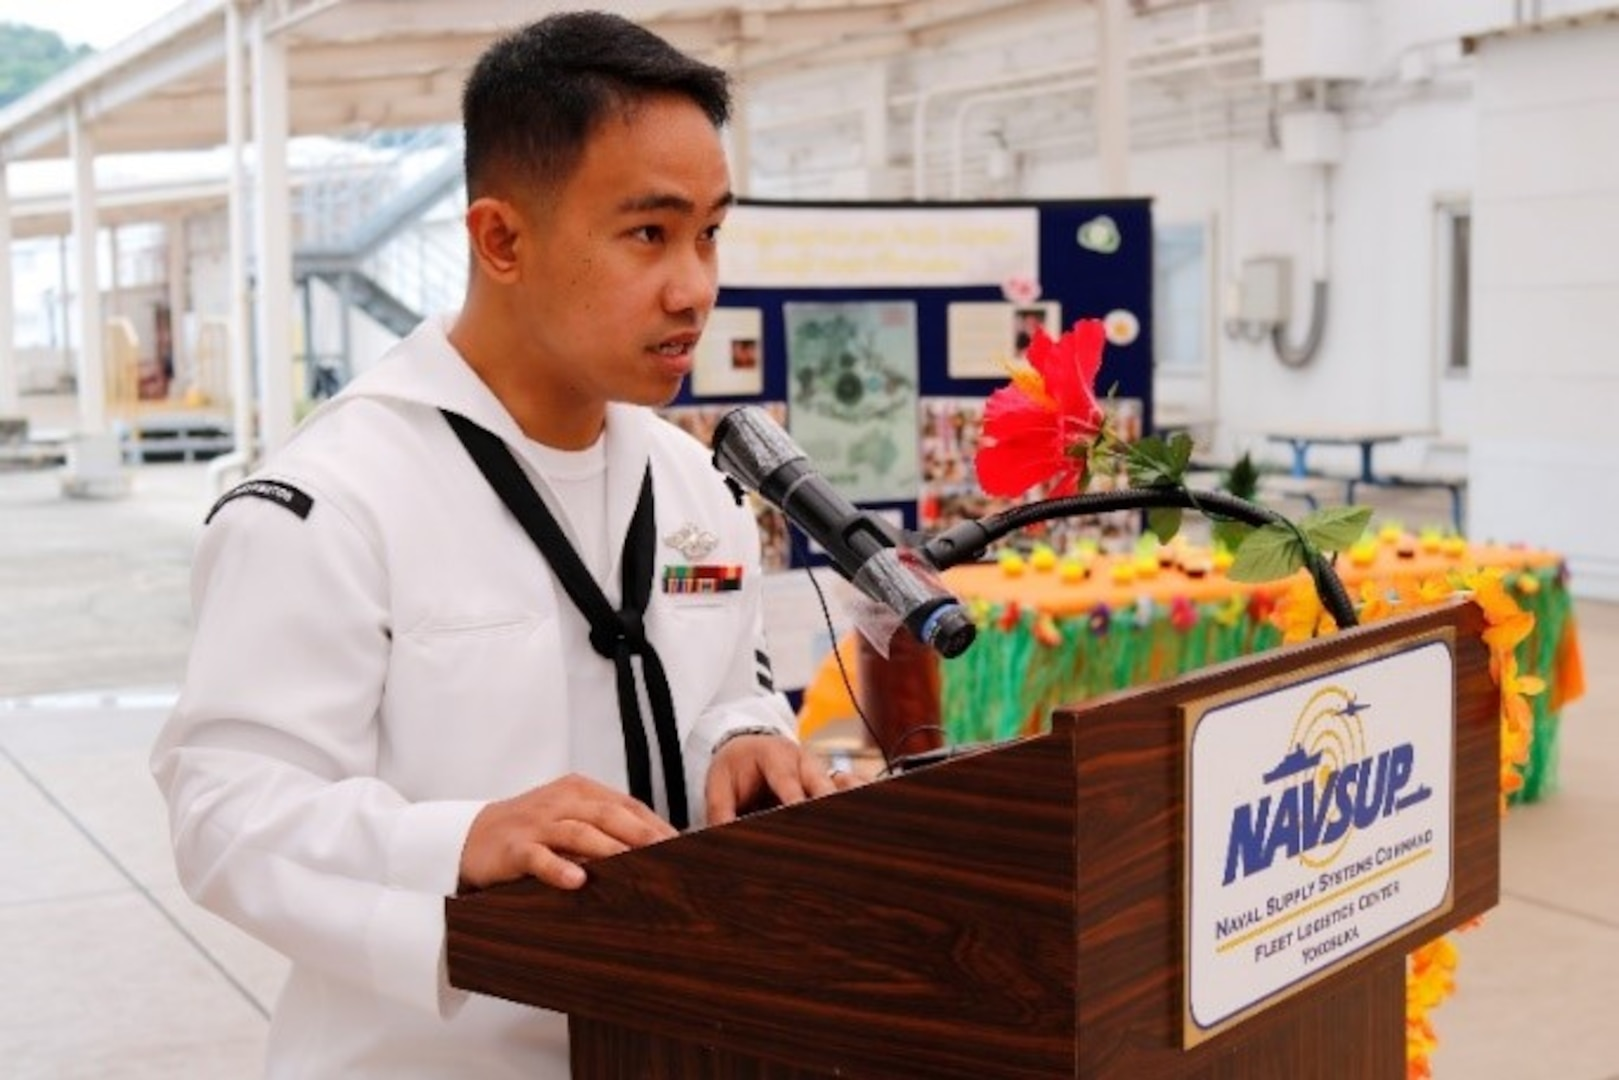 LS2 (FMF) Reymart Hombrebueno led the ceremony as emcee. He was born and raised in Philippines and moved to United States in October 2011 and enlisted into the Navy on July 18, 2012.